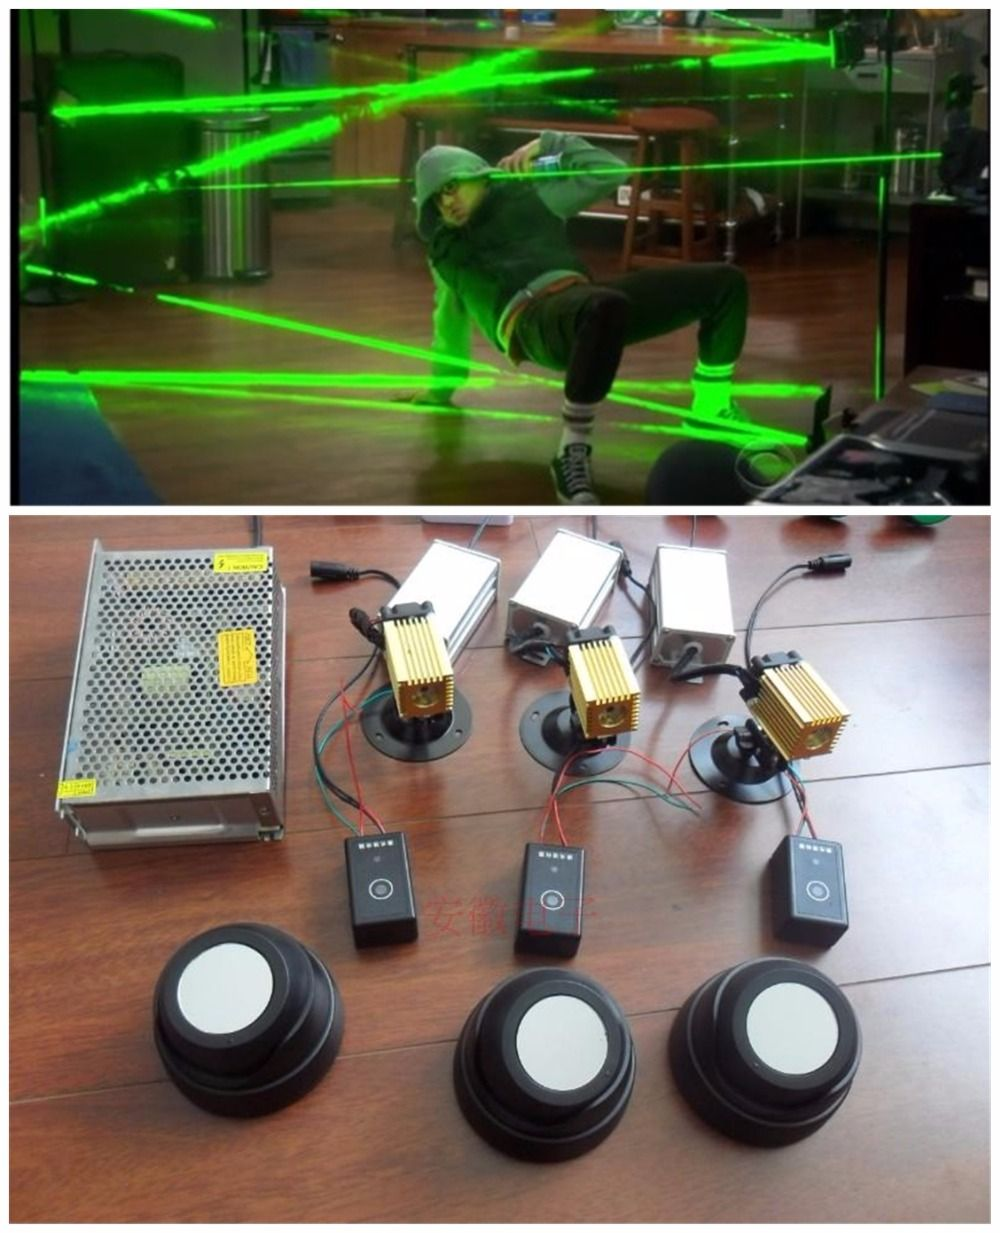 hotsale design magic penetralium escape props Real life room green laser array chamber of escape secret game kit